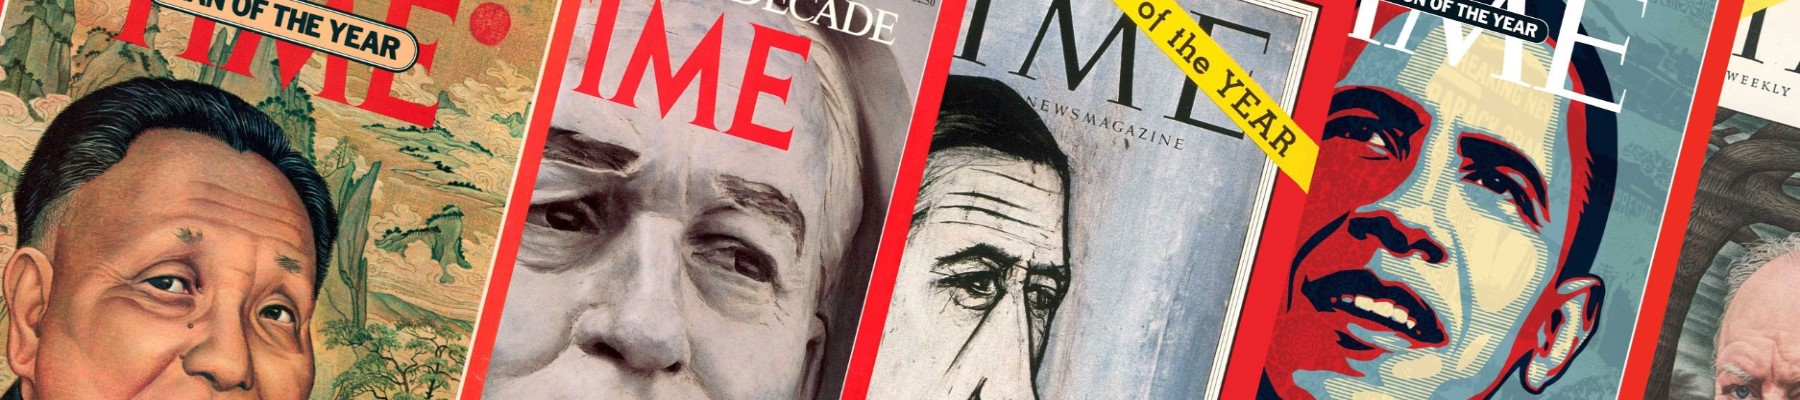 Mohammed Mossadegh Time Man Of The Year